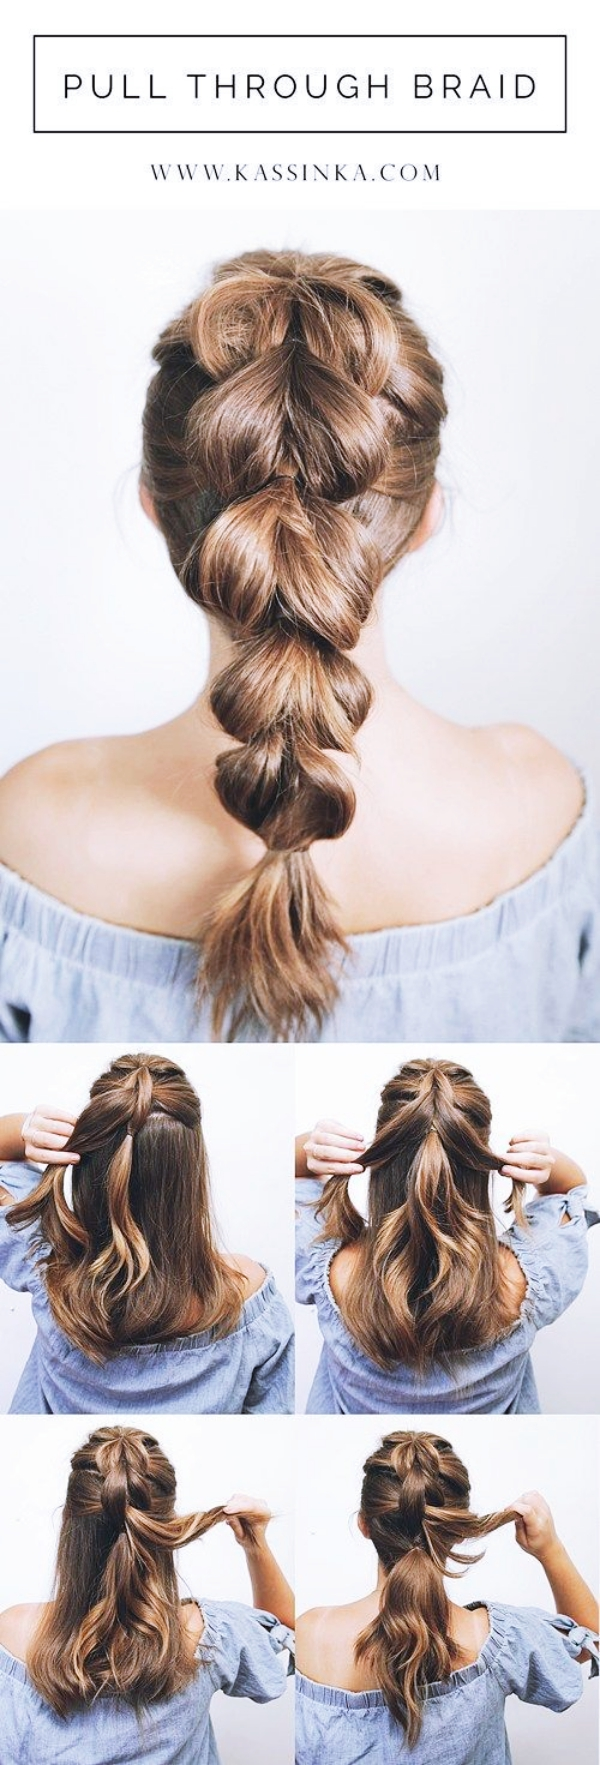 40 self-do hairstyles for working moms - buzz 2018